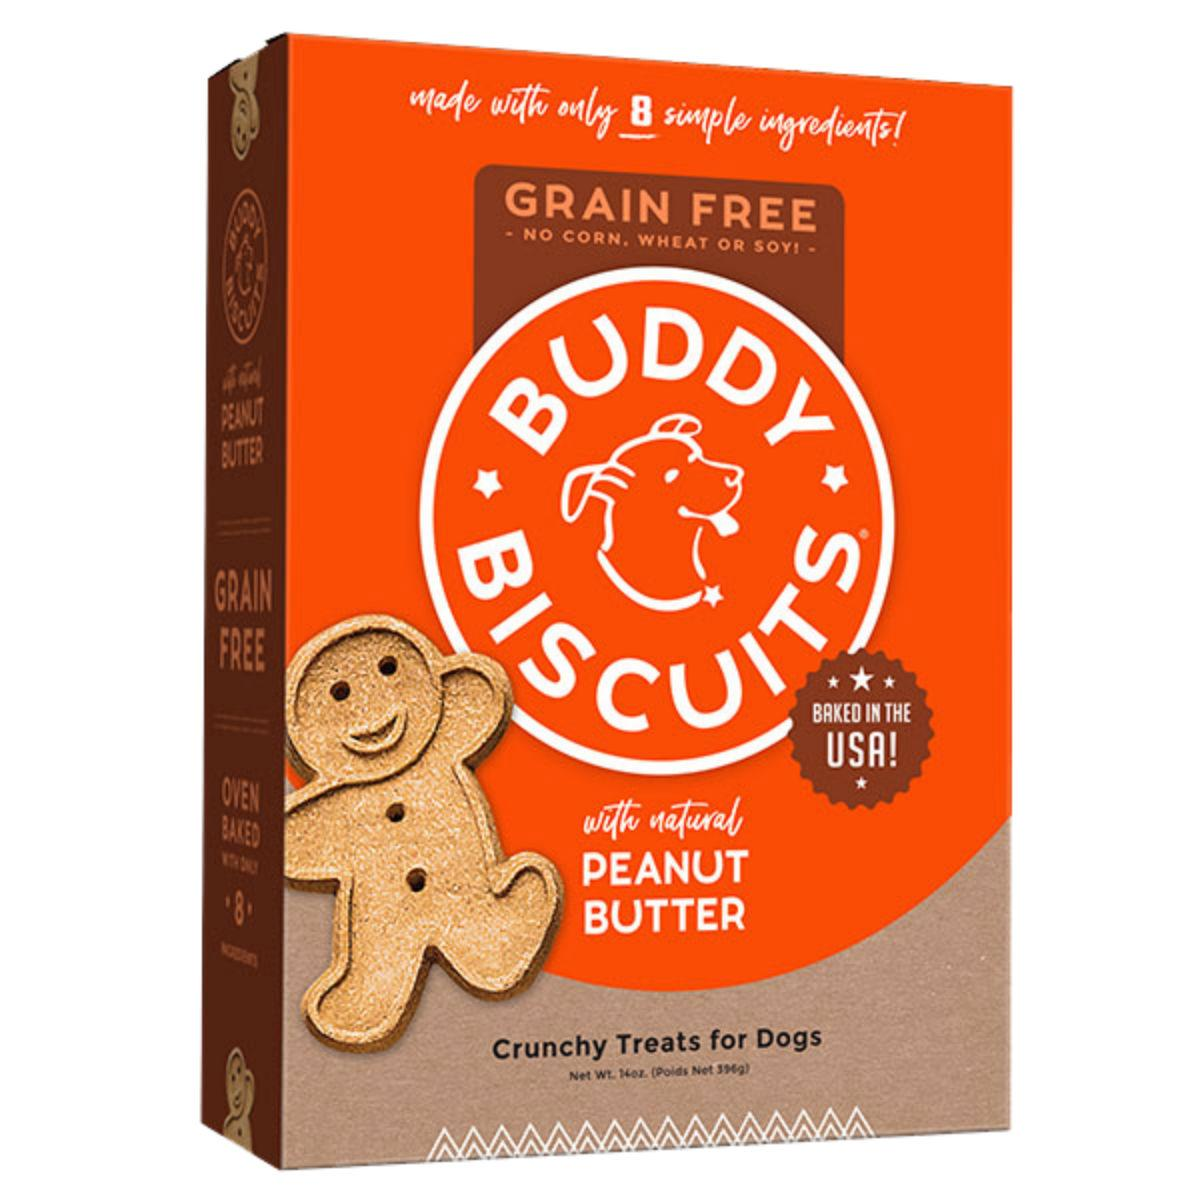 Buddy Biscuits Grain-Free Oven Baked Dog Treat - Homestyle Peanut Butter